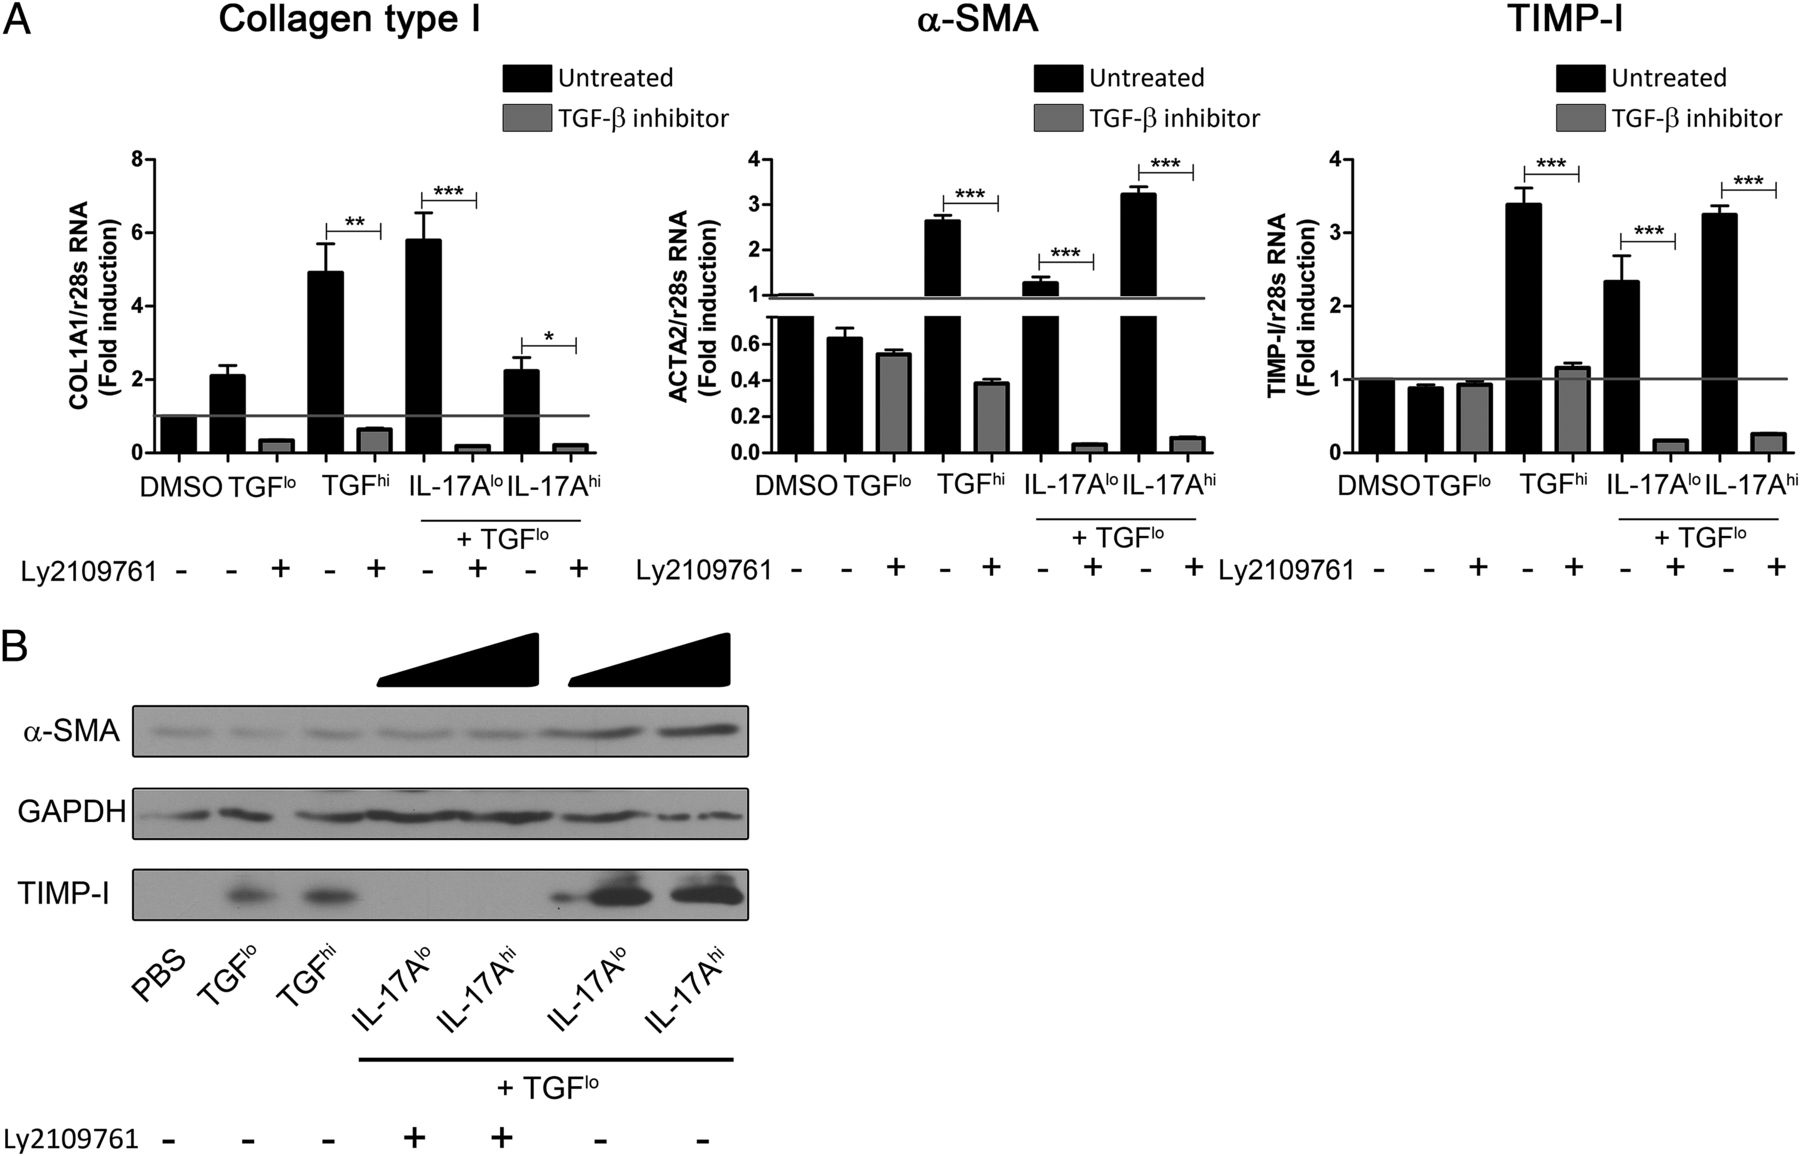 Il 17a Enhances The Expression Of Profibrotic Genes Through Upregulation Of The Tgf Receptor